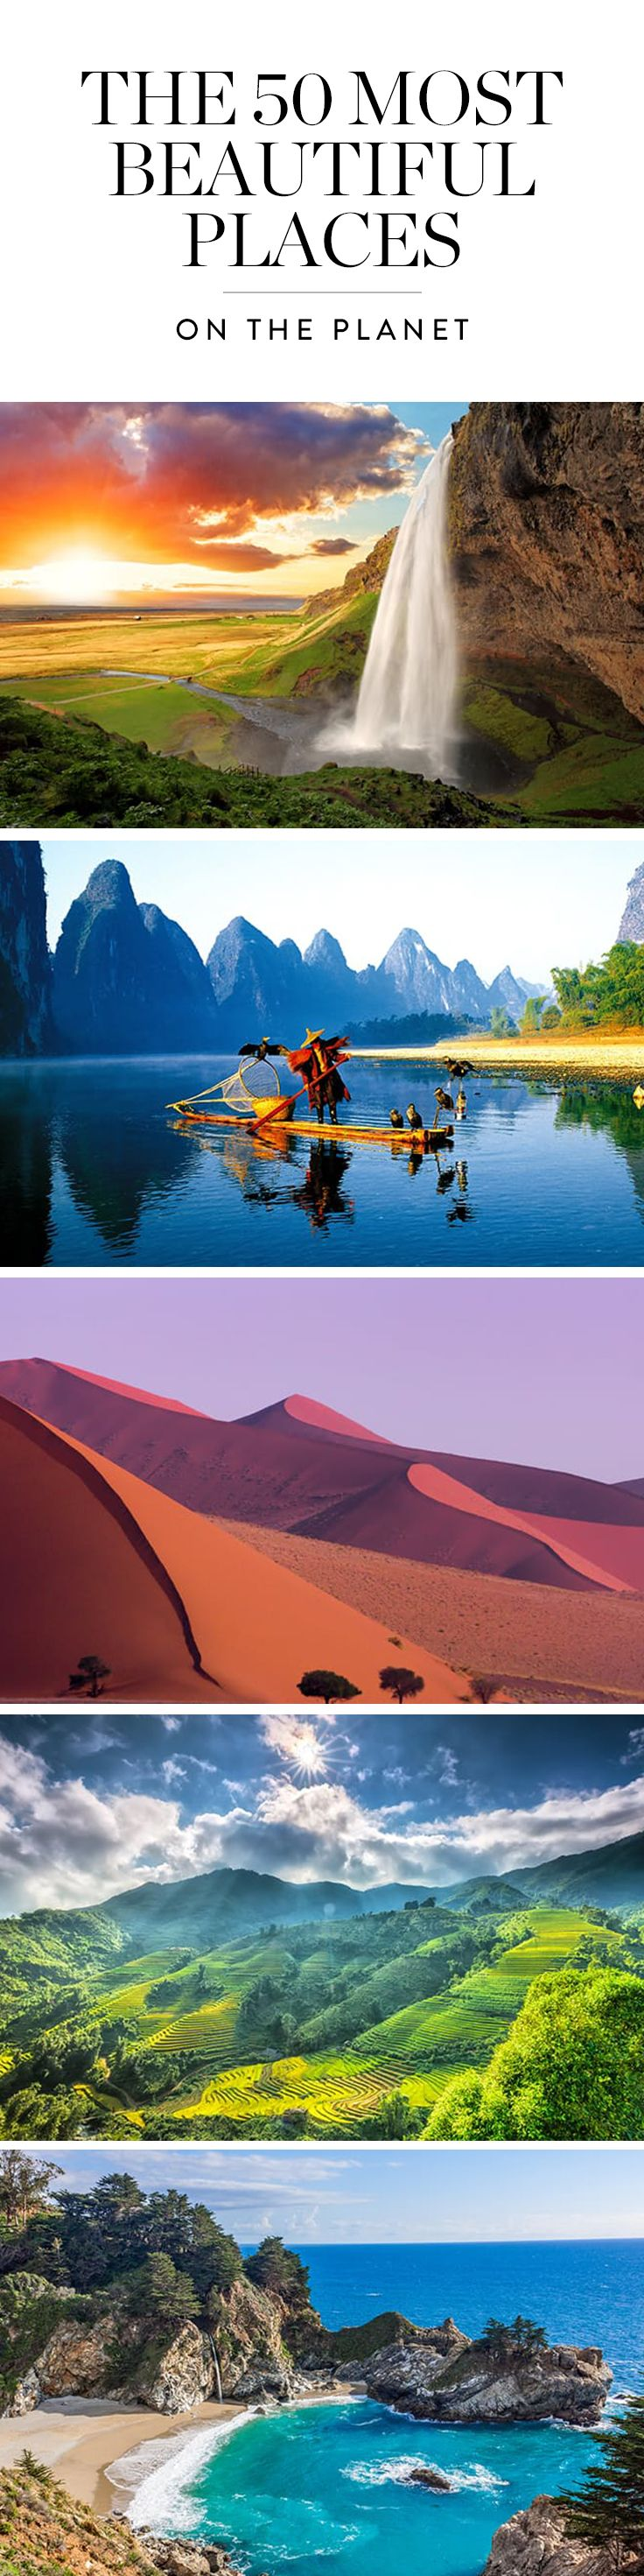 The world has so many jaw-dropping places. We decided we needed to take a closer look at them. Here are 50 of the most insanely beautiful places on the planet. Prepare for an onslaught of wanderlust.